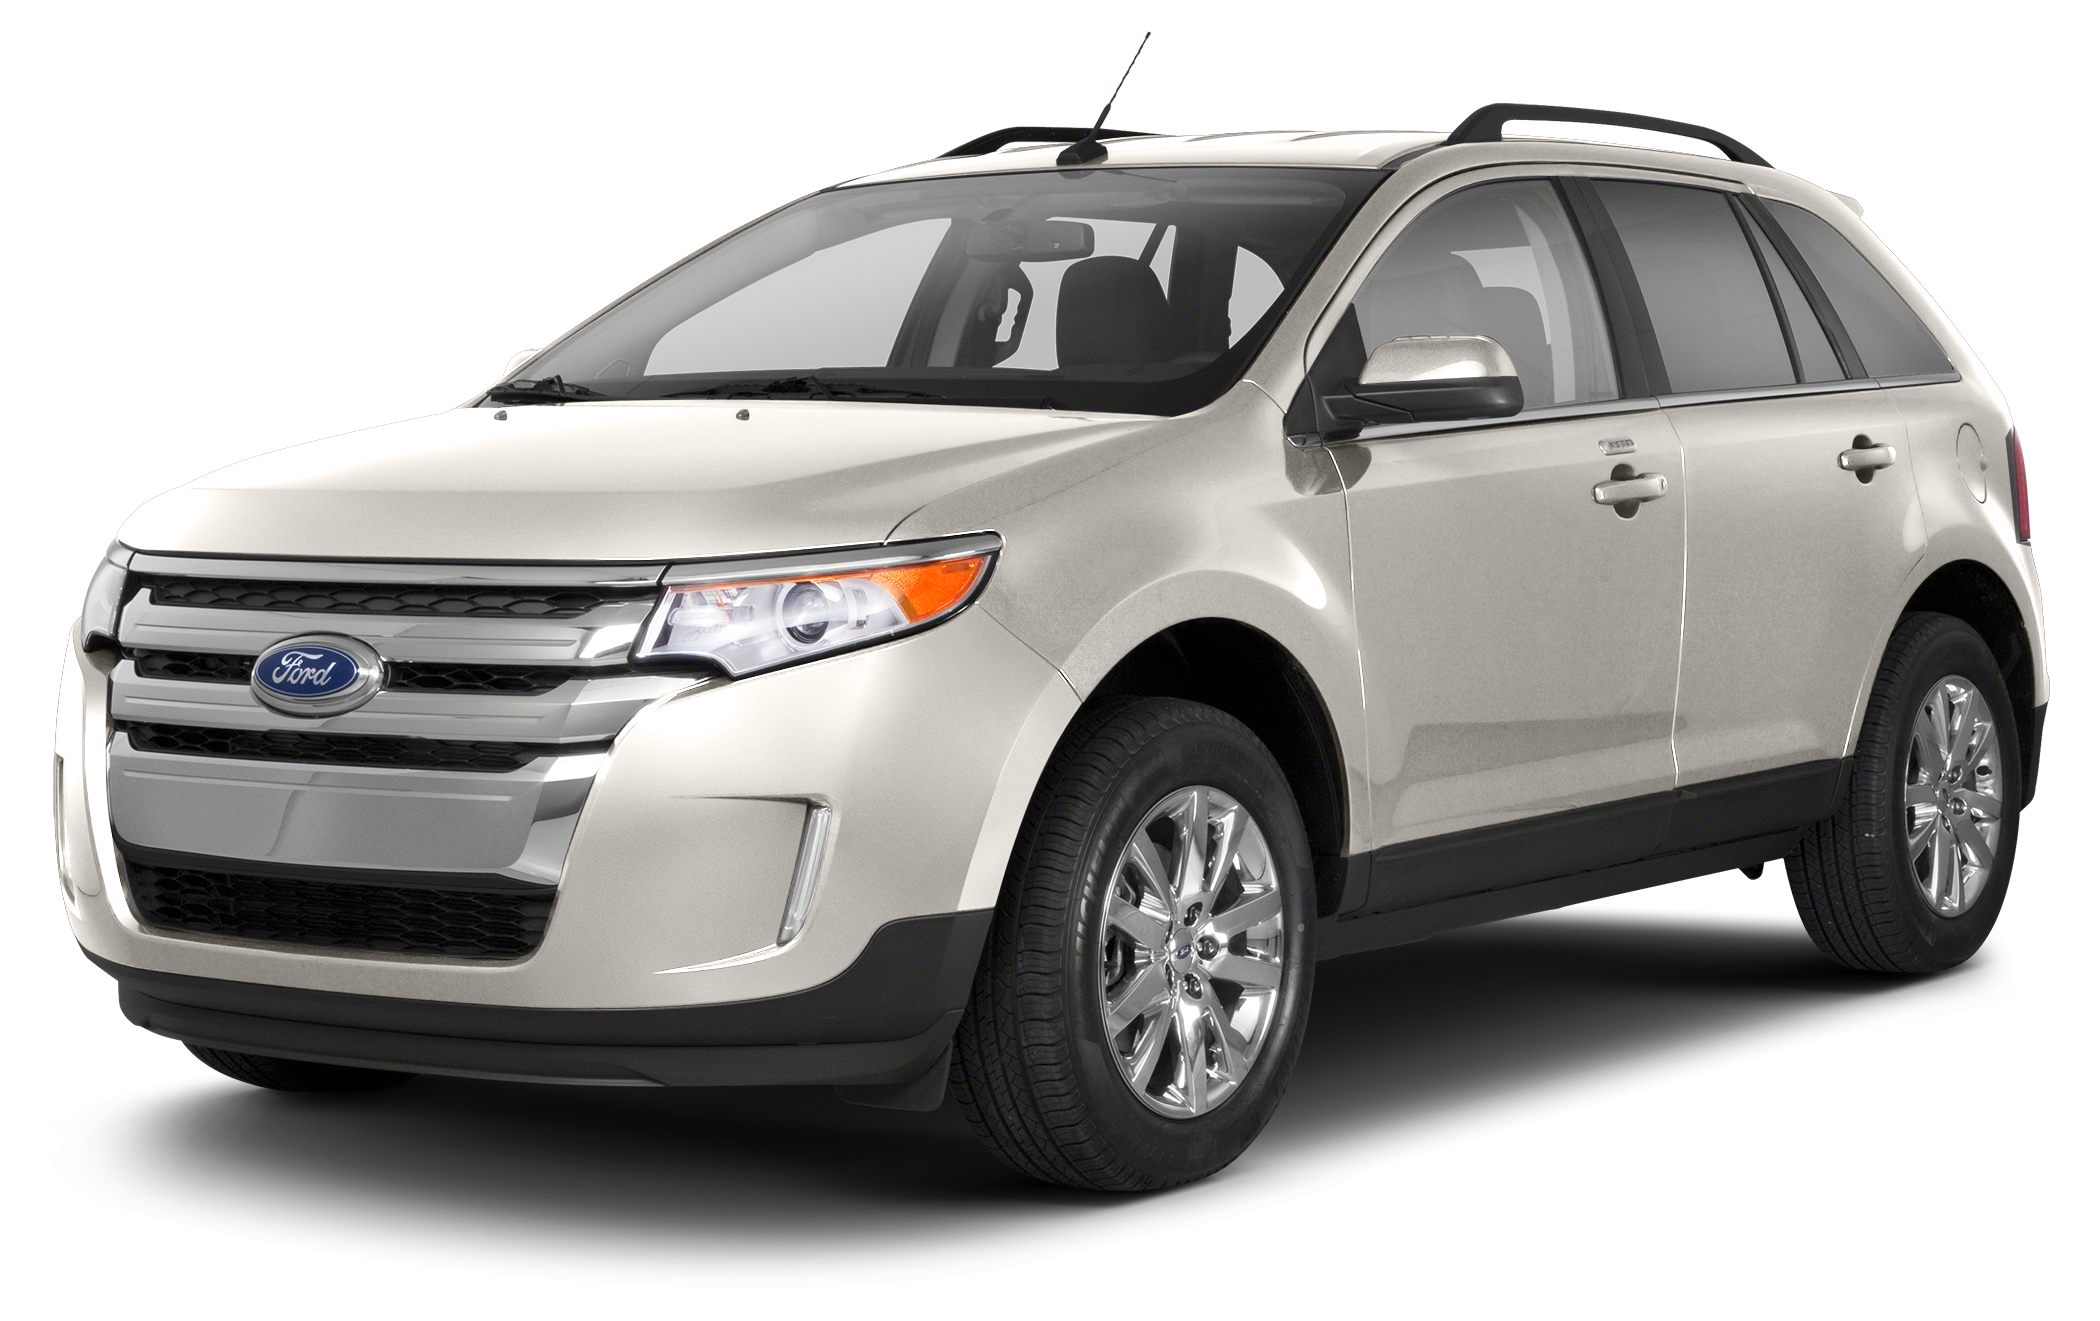 2013 Ford Edge Limited CARFAX 1-Owner GREAT MILES 13942 FUEL EFFICIENT 27 MPG Hwy19 MPG City